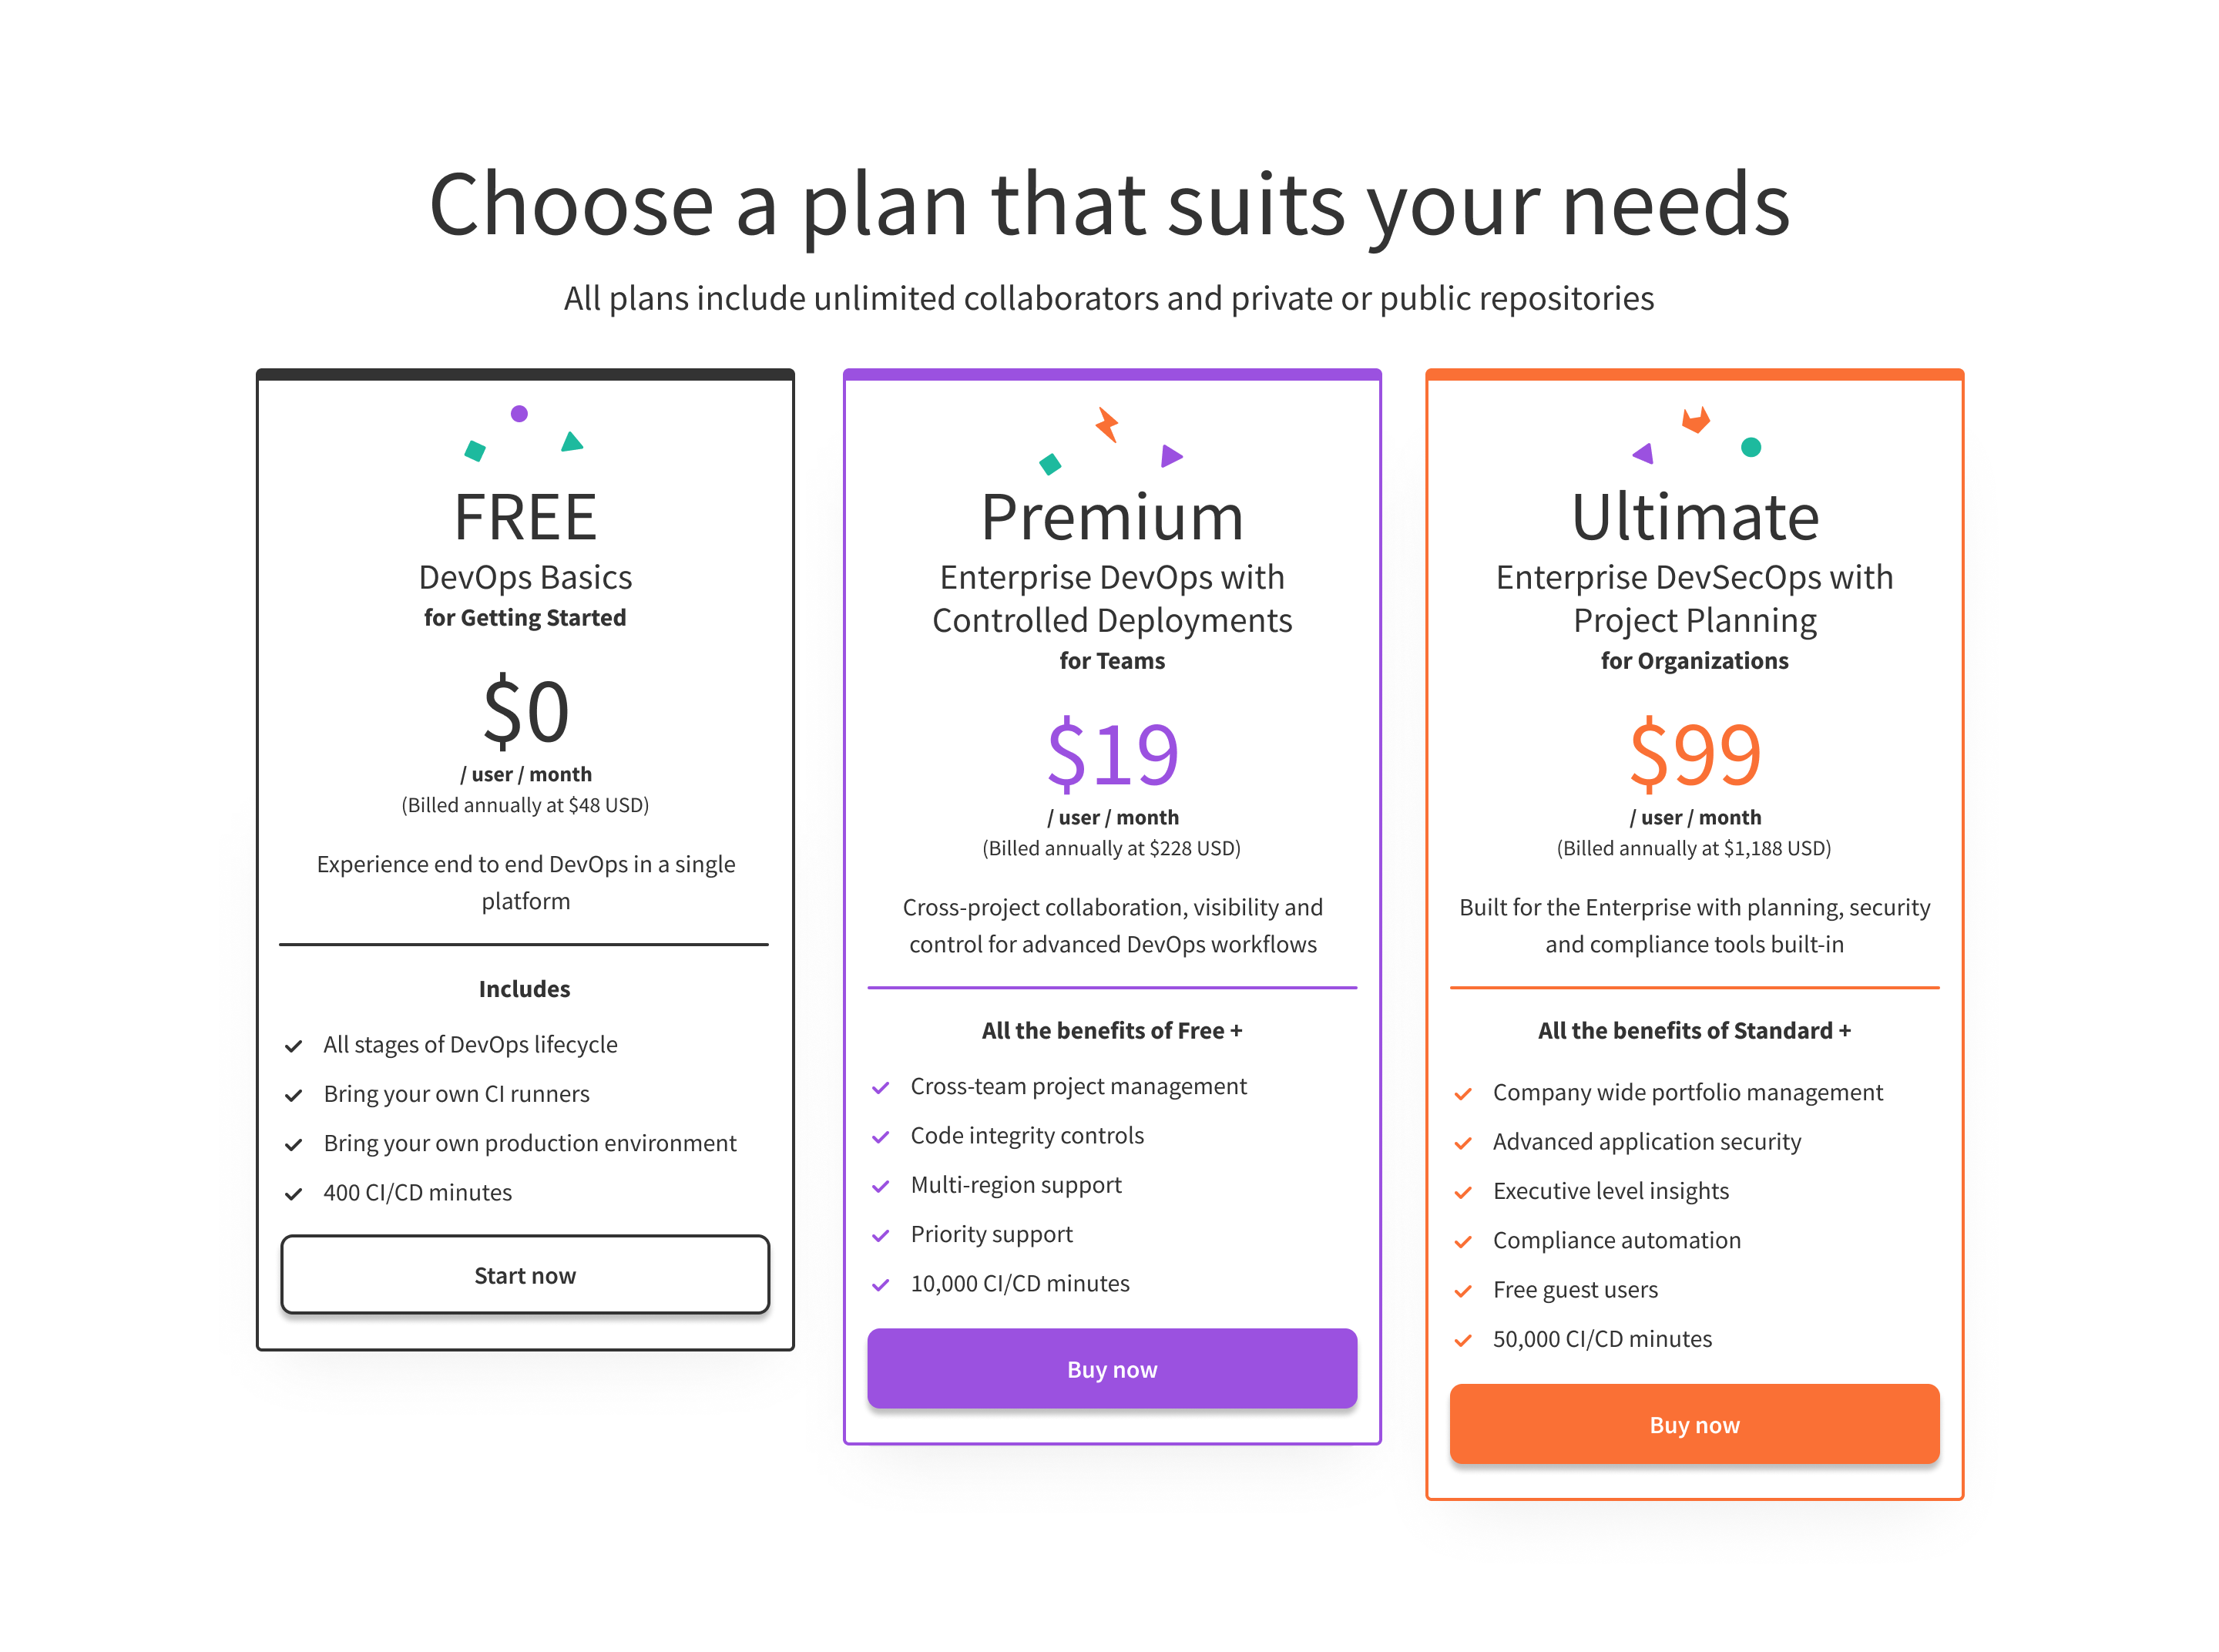 GitLab reshuffles its paid subscription plans, drops its Bronze/Starter tier